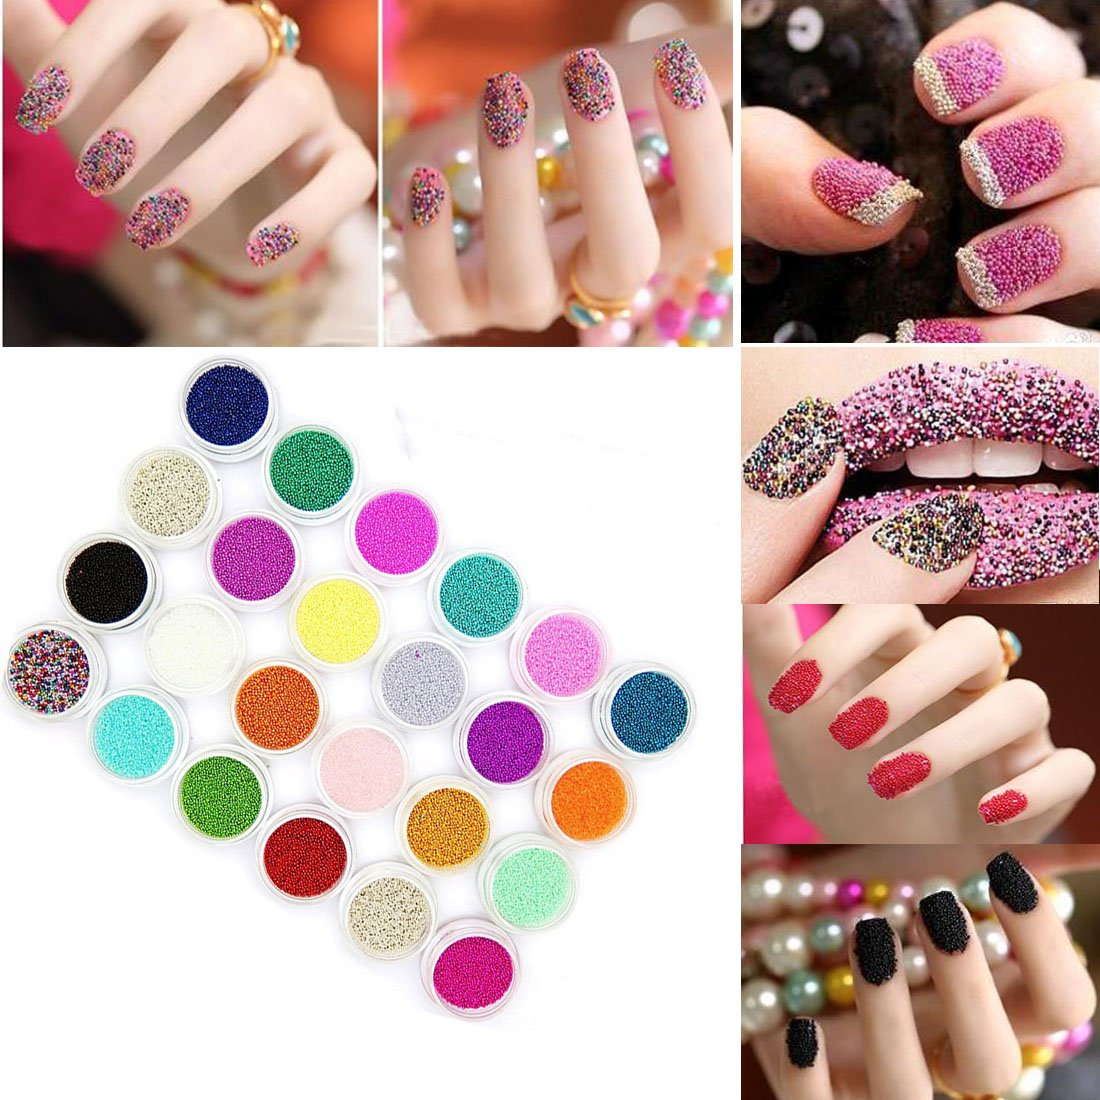 Lookathot 24 Colors Nail Art Dust Glitter Powder DIY Decoration UV Acrylic Gel Tips Laser Flashing Powder Bead Velvet Shell Sequins Decor Accessories NS06